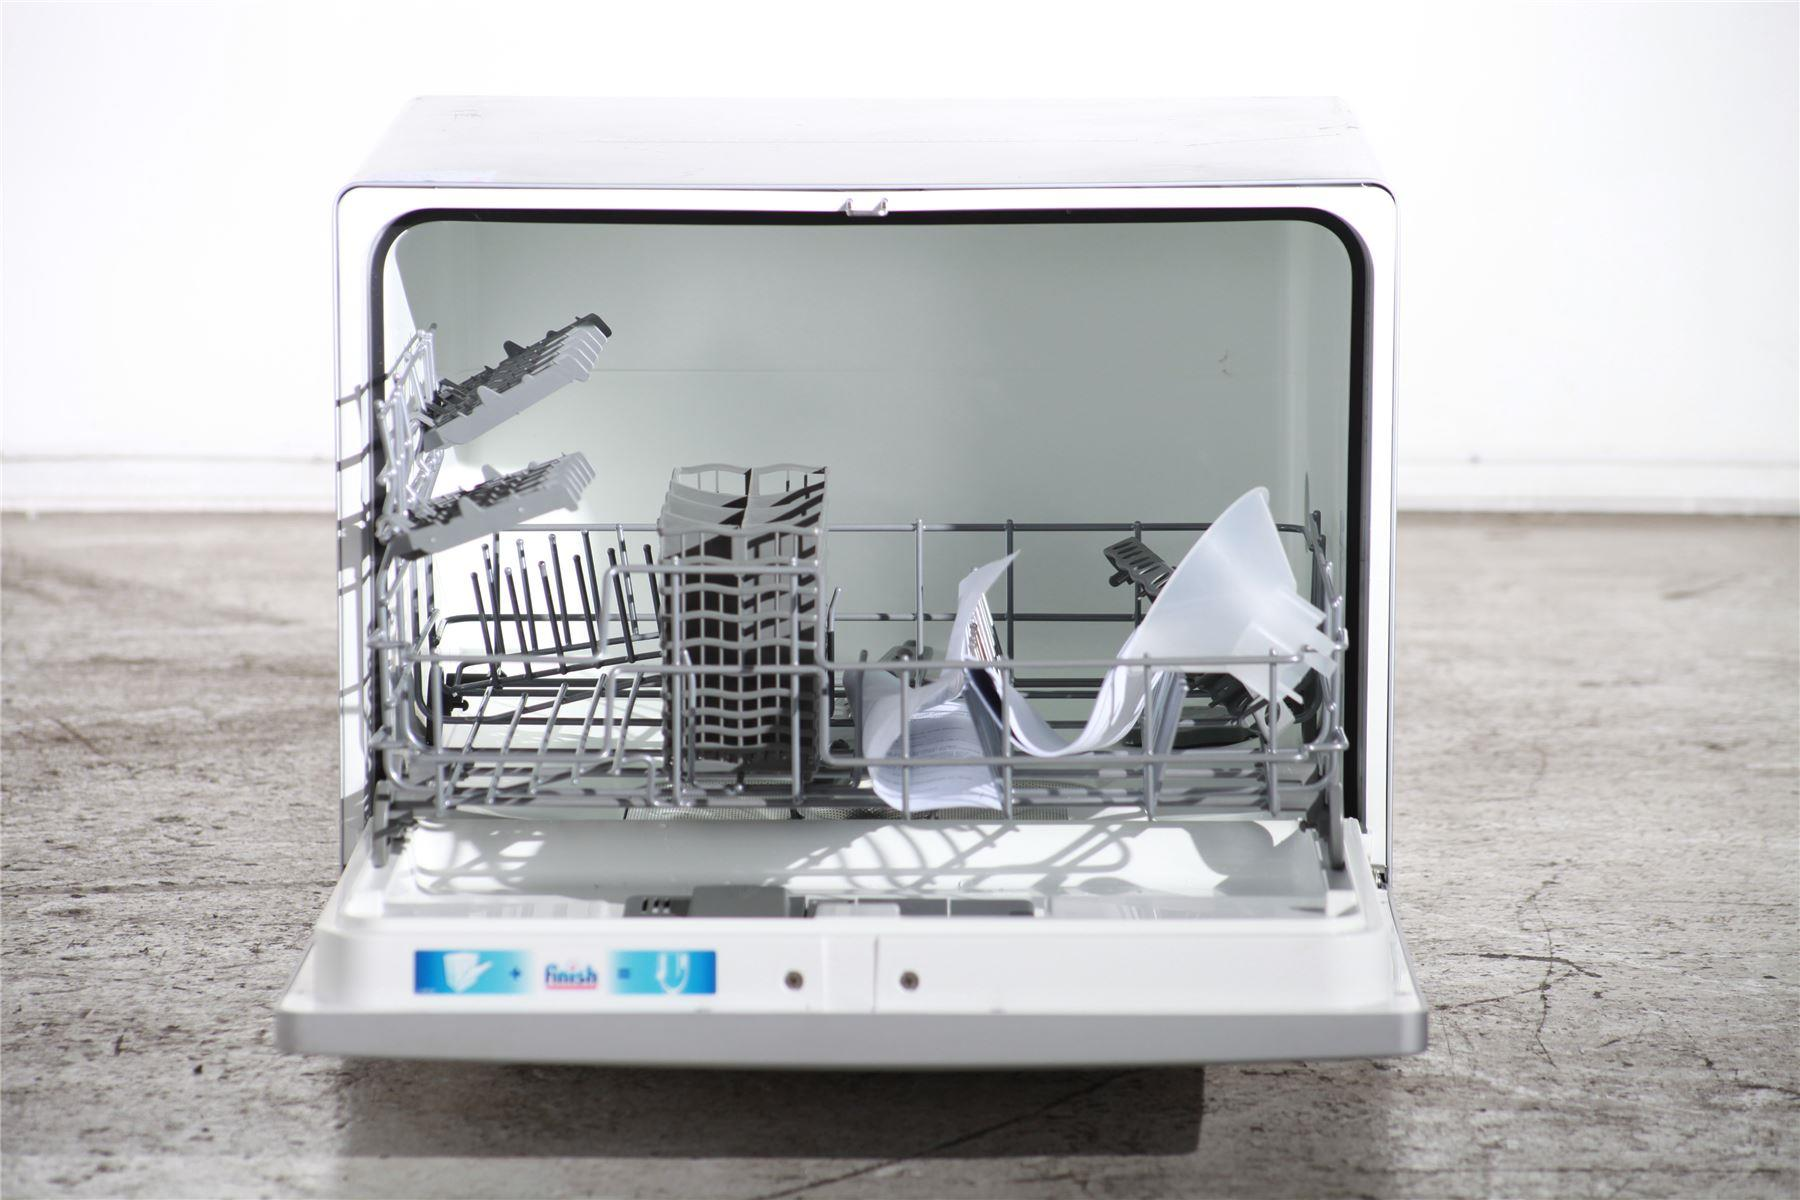 Table Top Dishwasher For Sale : Zanussi Table Top Dishwasher - ZSF2450S - Silver Online Store